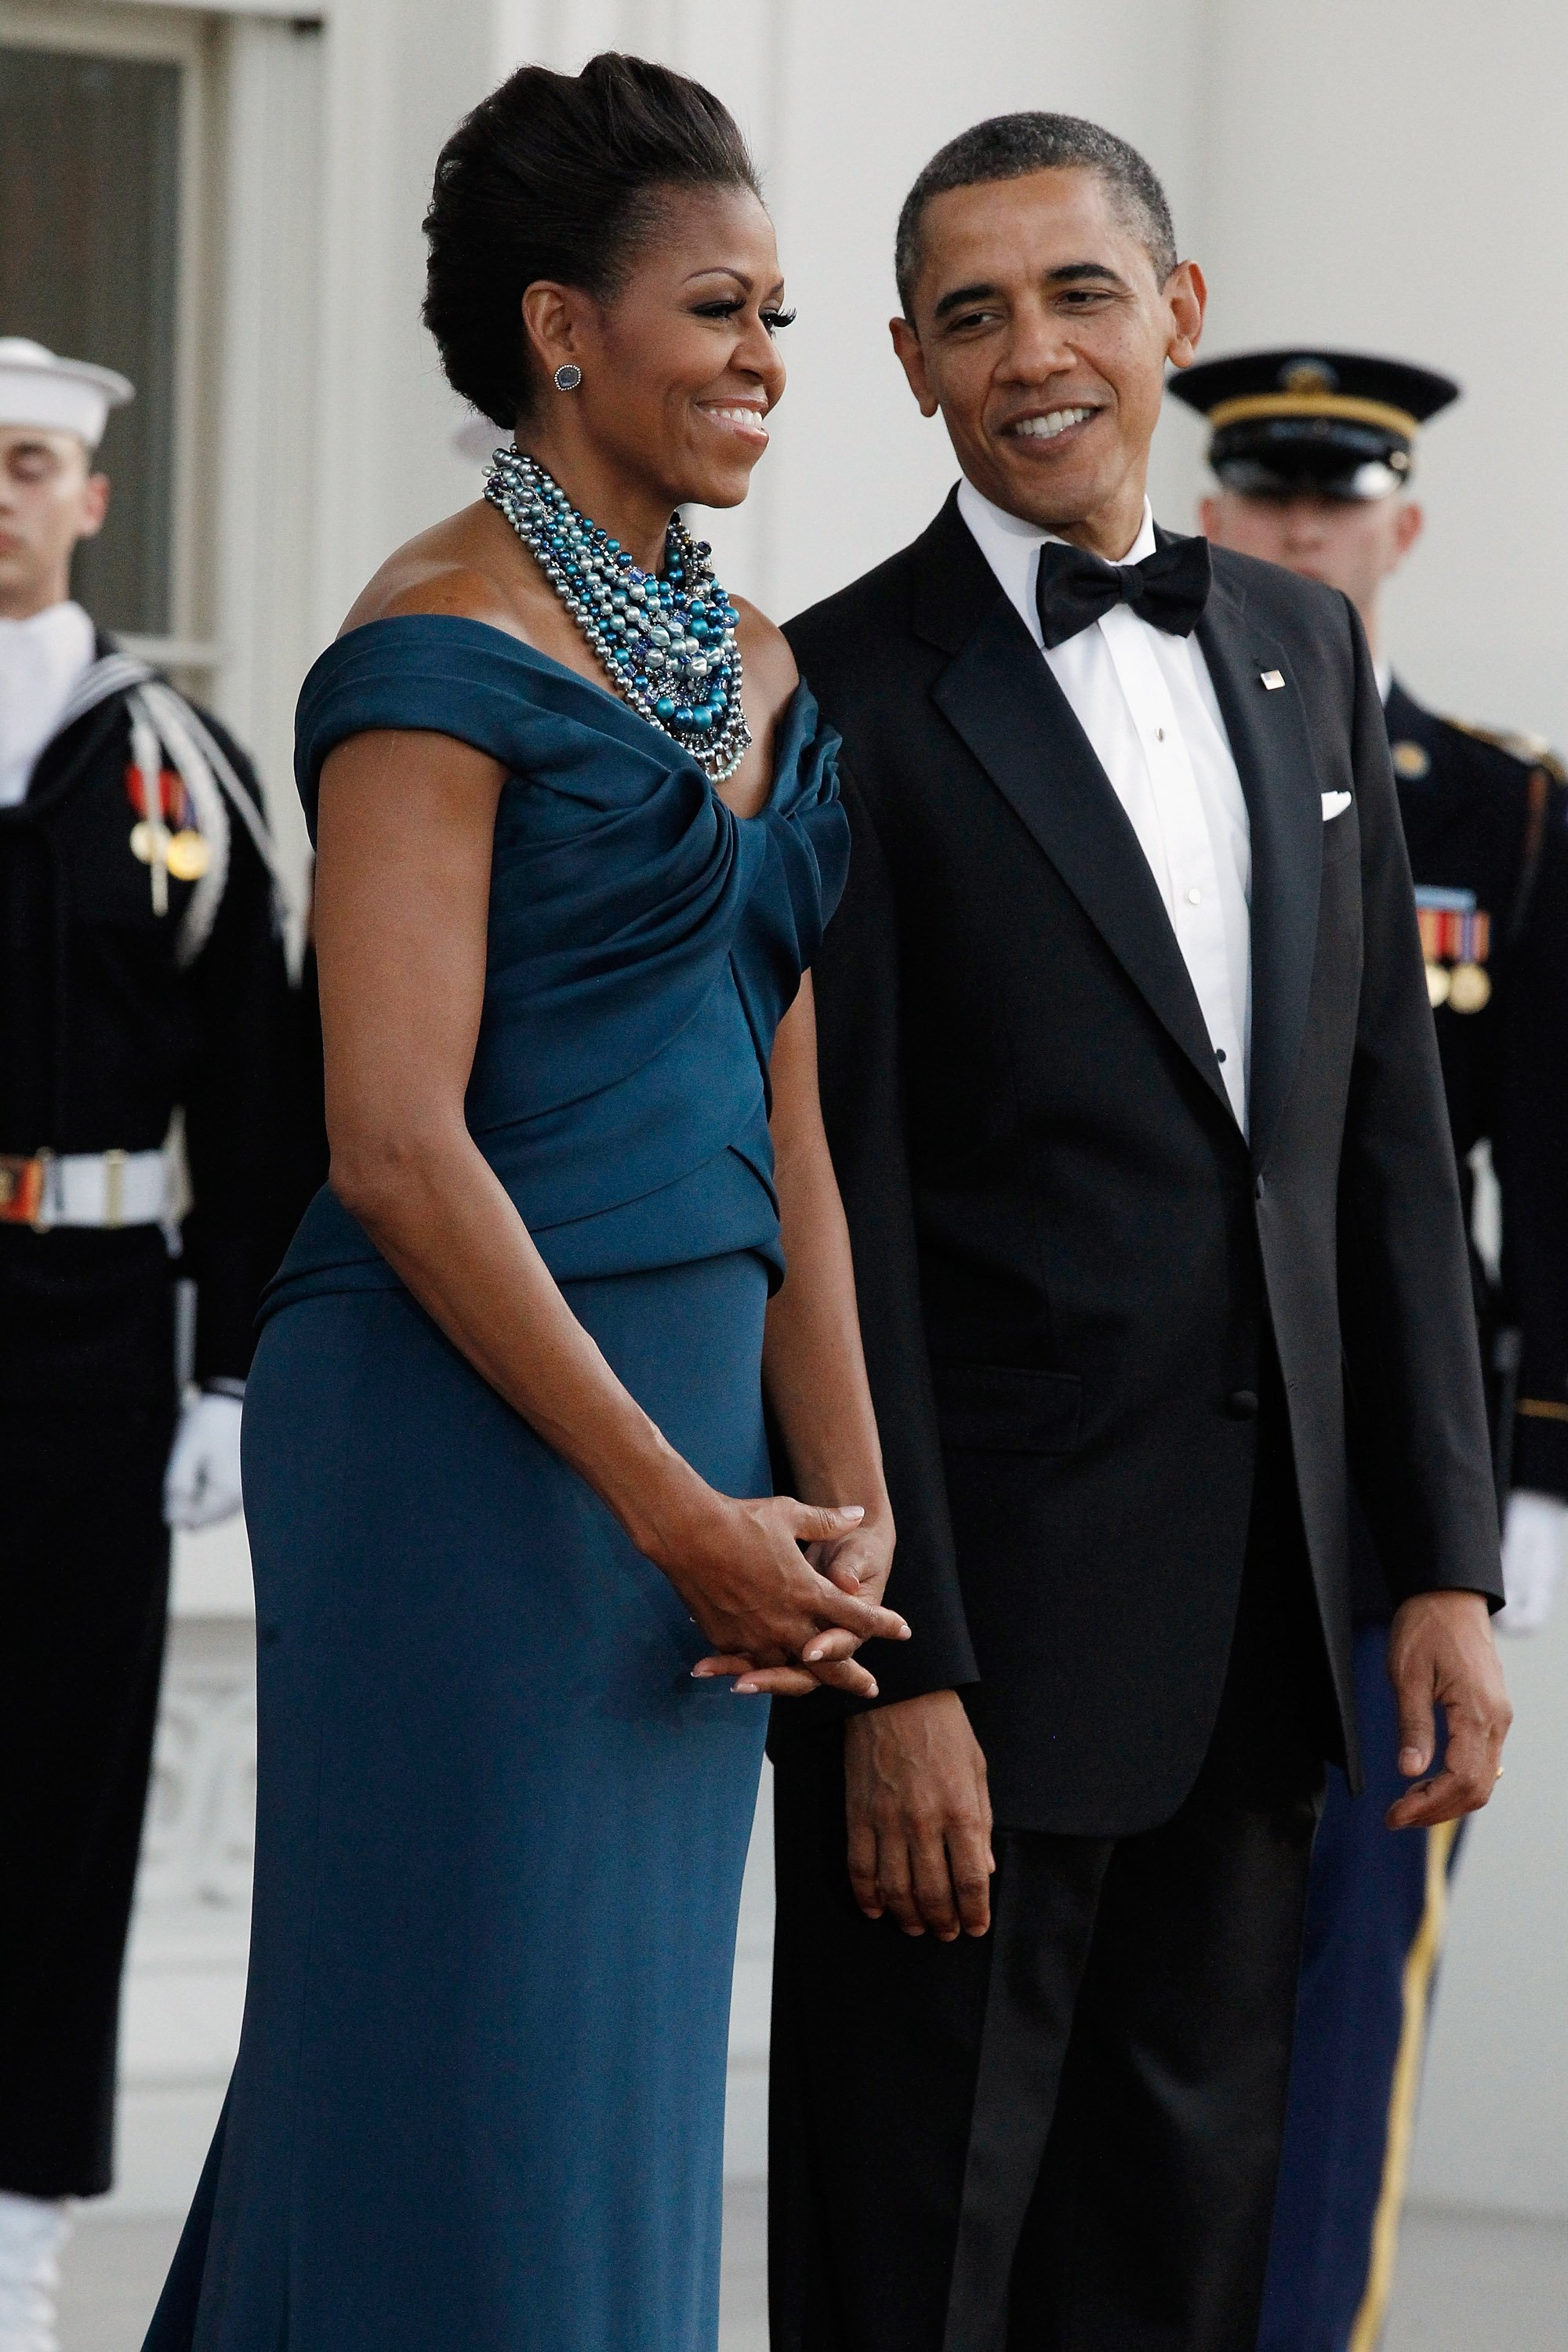 Michelle Obama and Barack Obama await the arrival of British Prime Minister David Cameron and his wife Samantha at the White House on March 14, 2012 | Photo: Getty Images